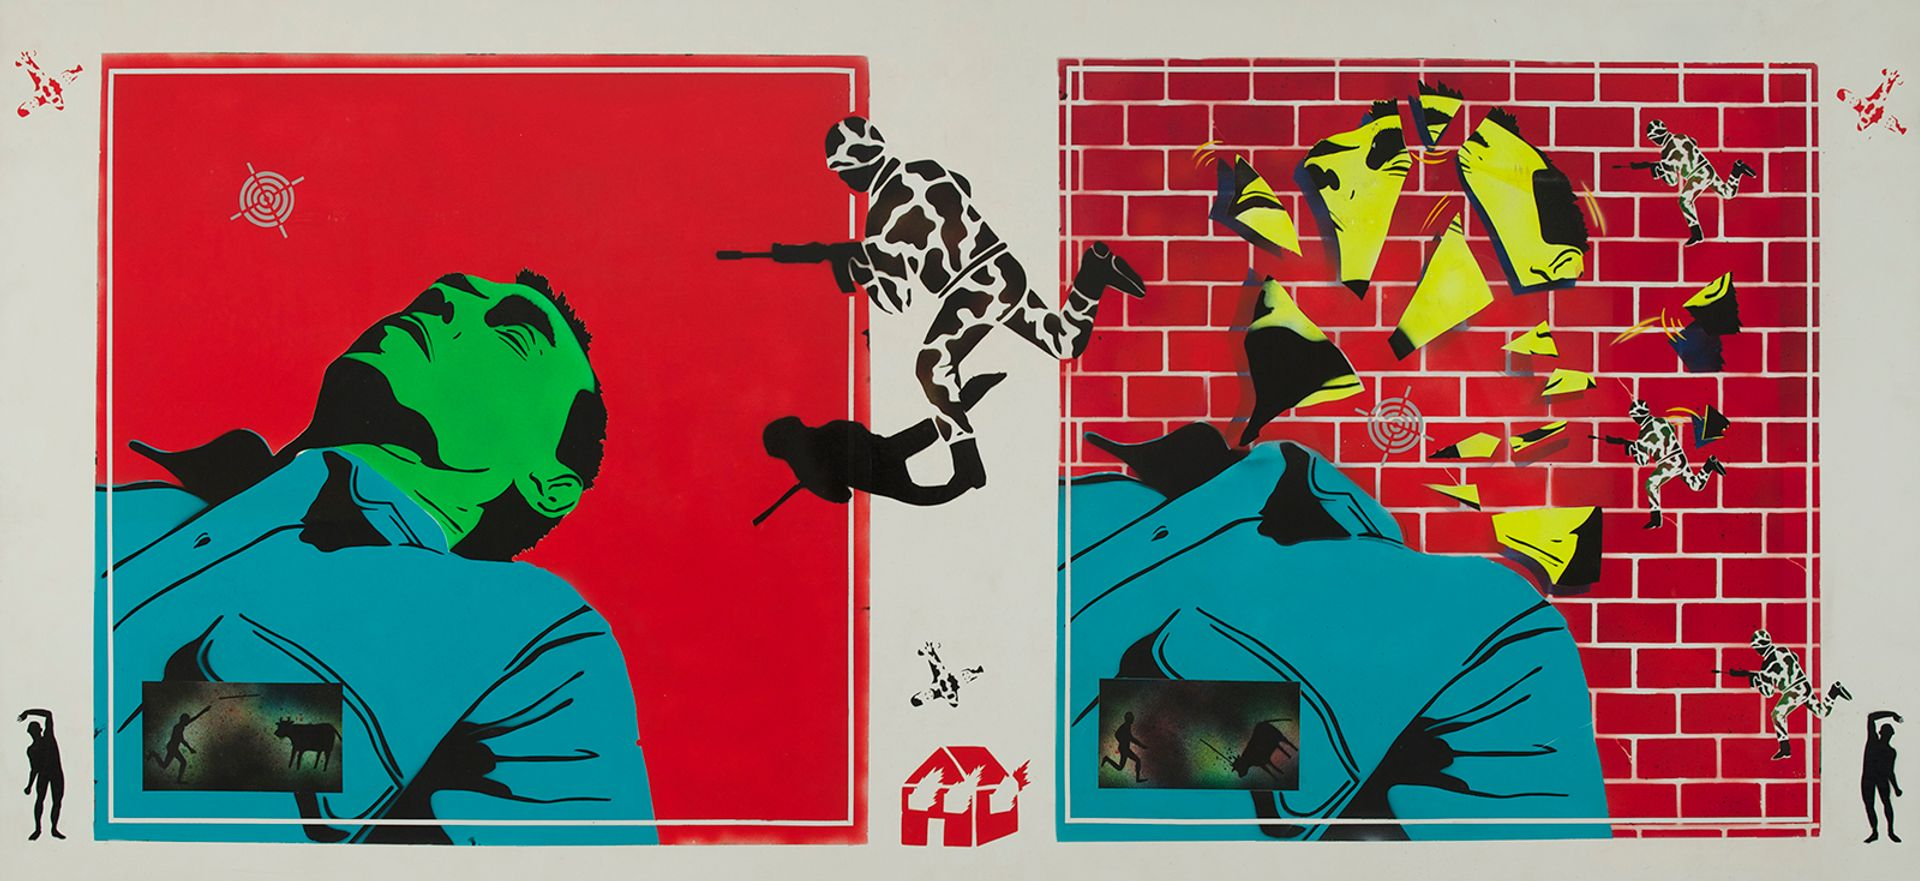 David Wojnarowicz, Untitled (Green Head) (1982) Collection of Hal Bromm and Doneley Meris. Image courtesy of the Estate of David Wojnarowicz and P.P.O.W, New York